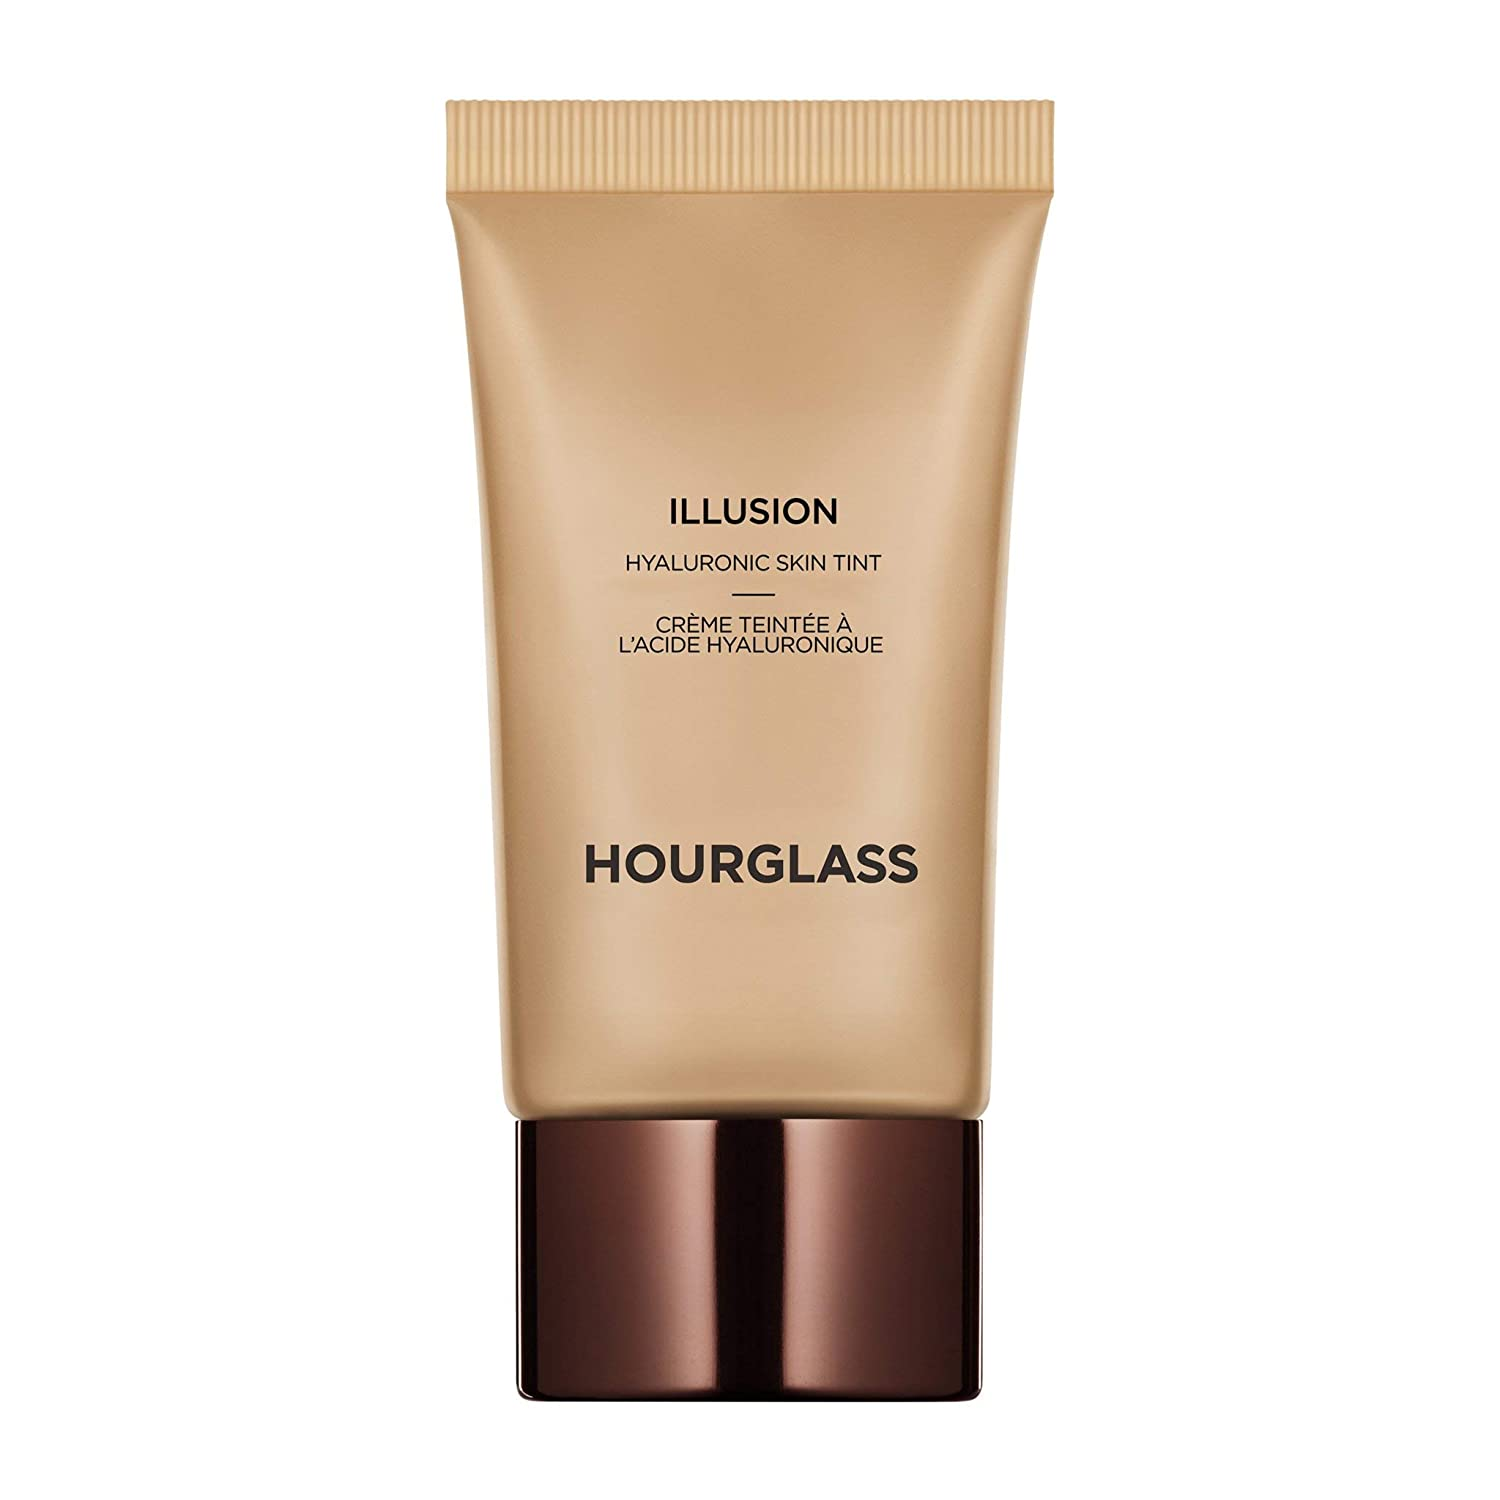 Hourglass Illusion Hyaluronic Skin Tint (Beige)